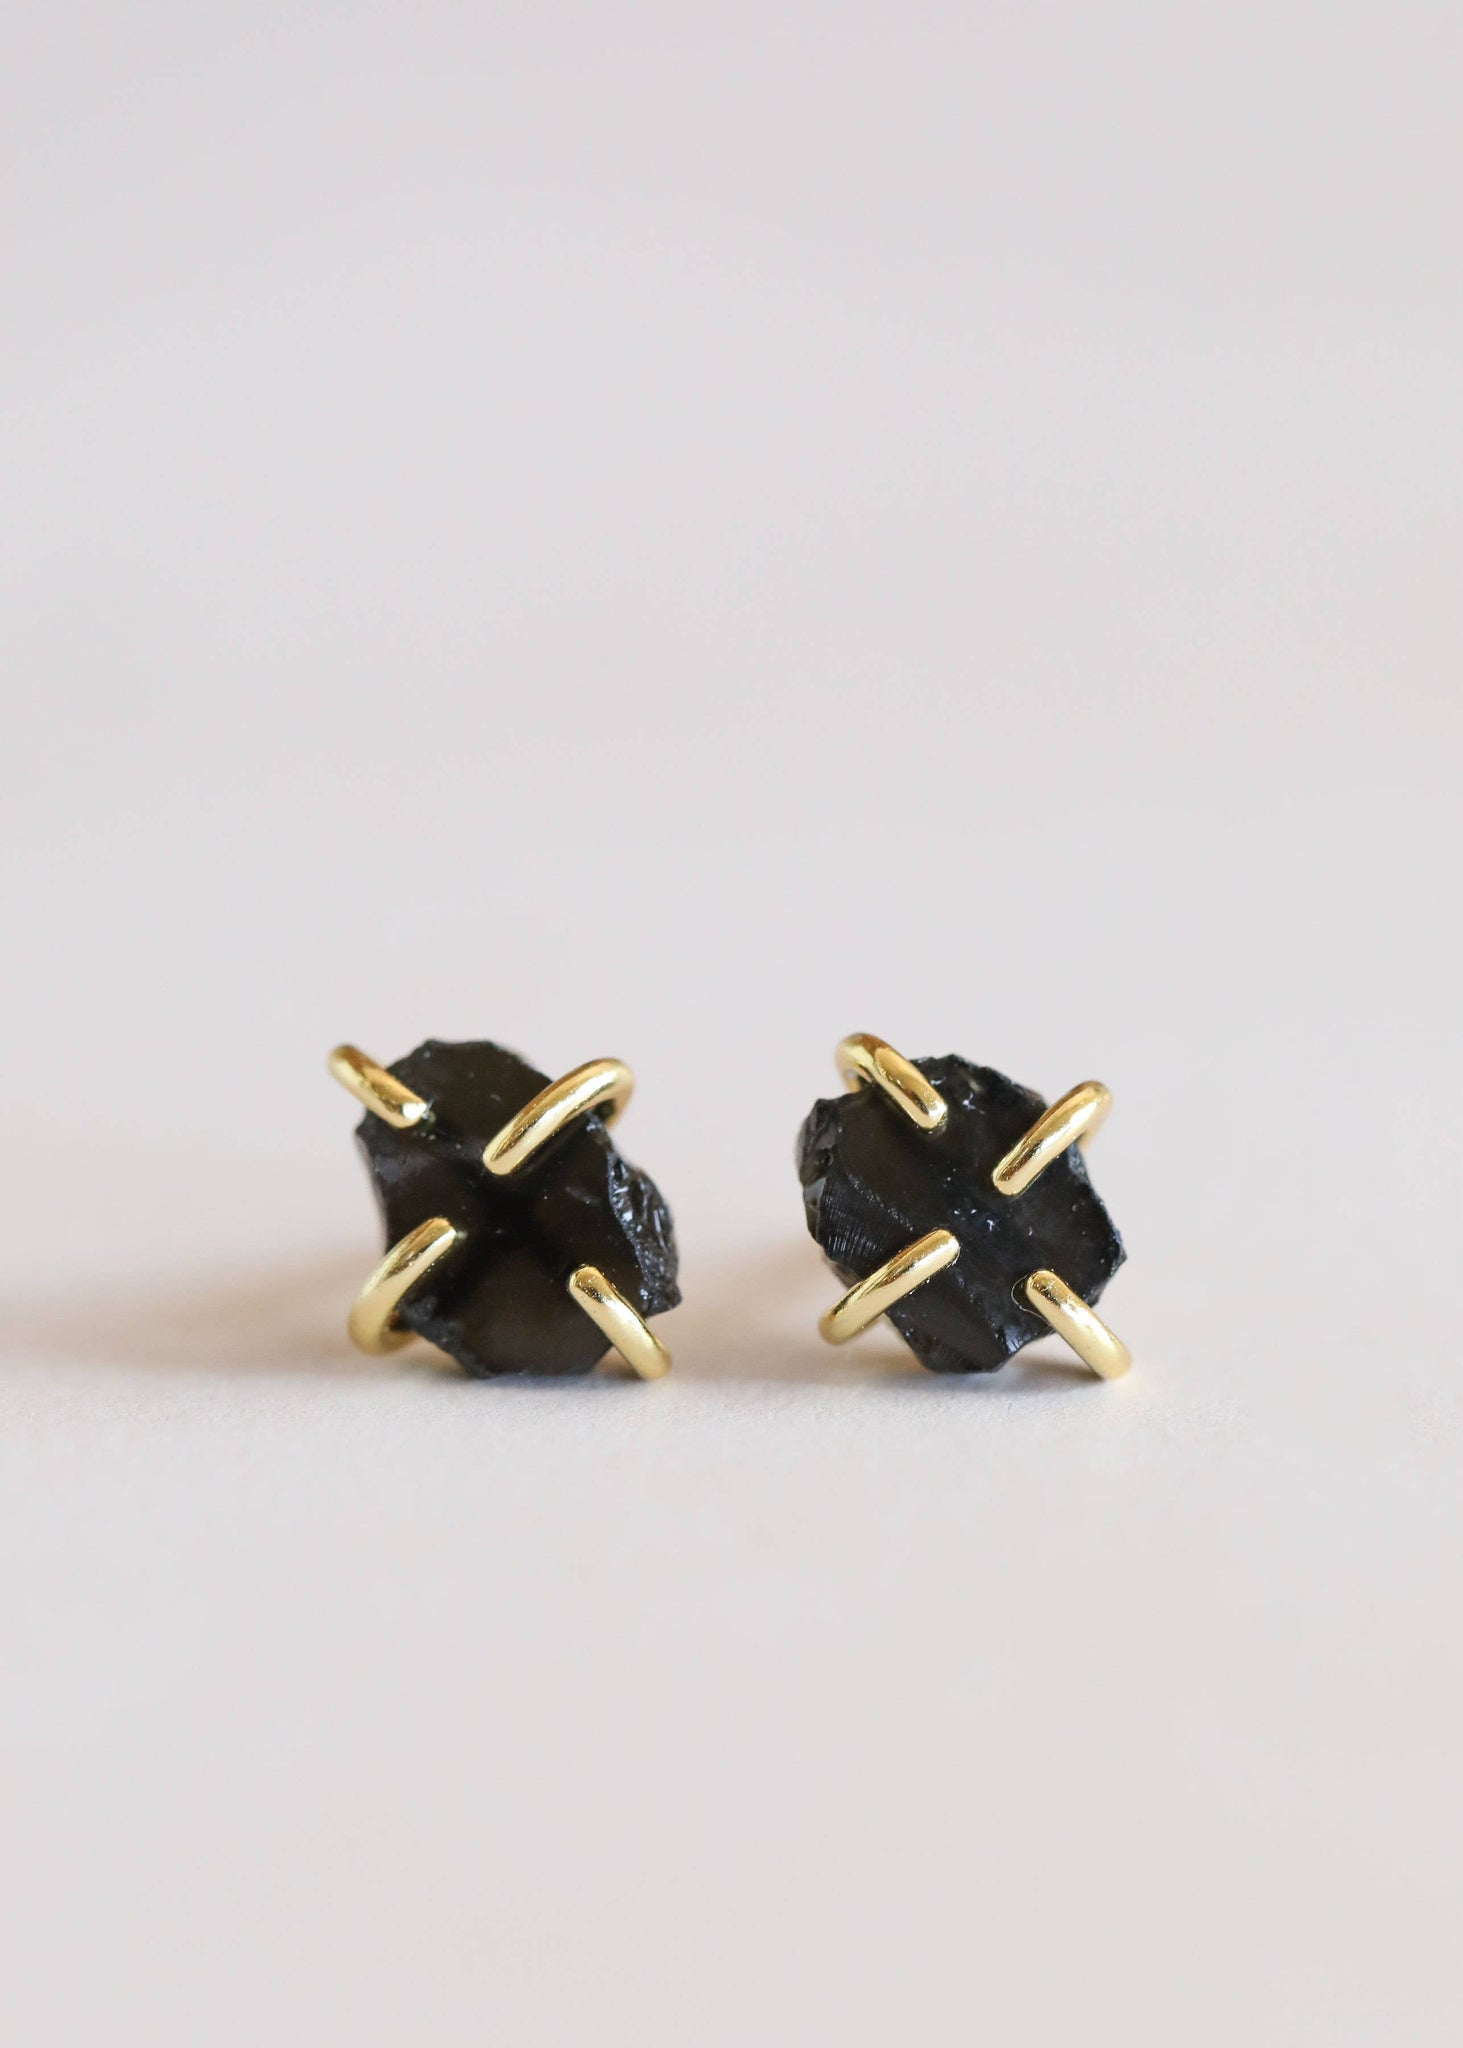 Obsidian Gemstone Prong Earrings - Rise and Redemption